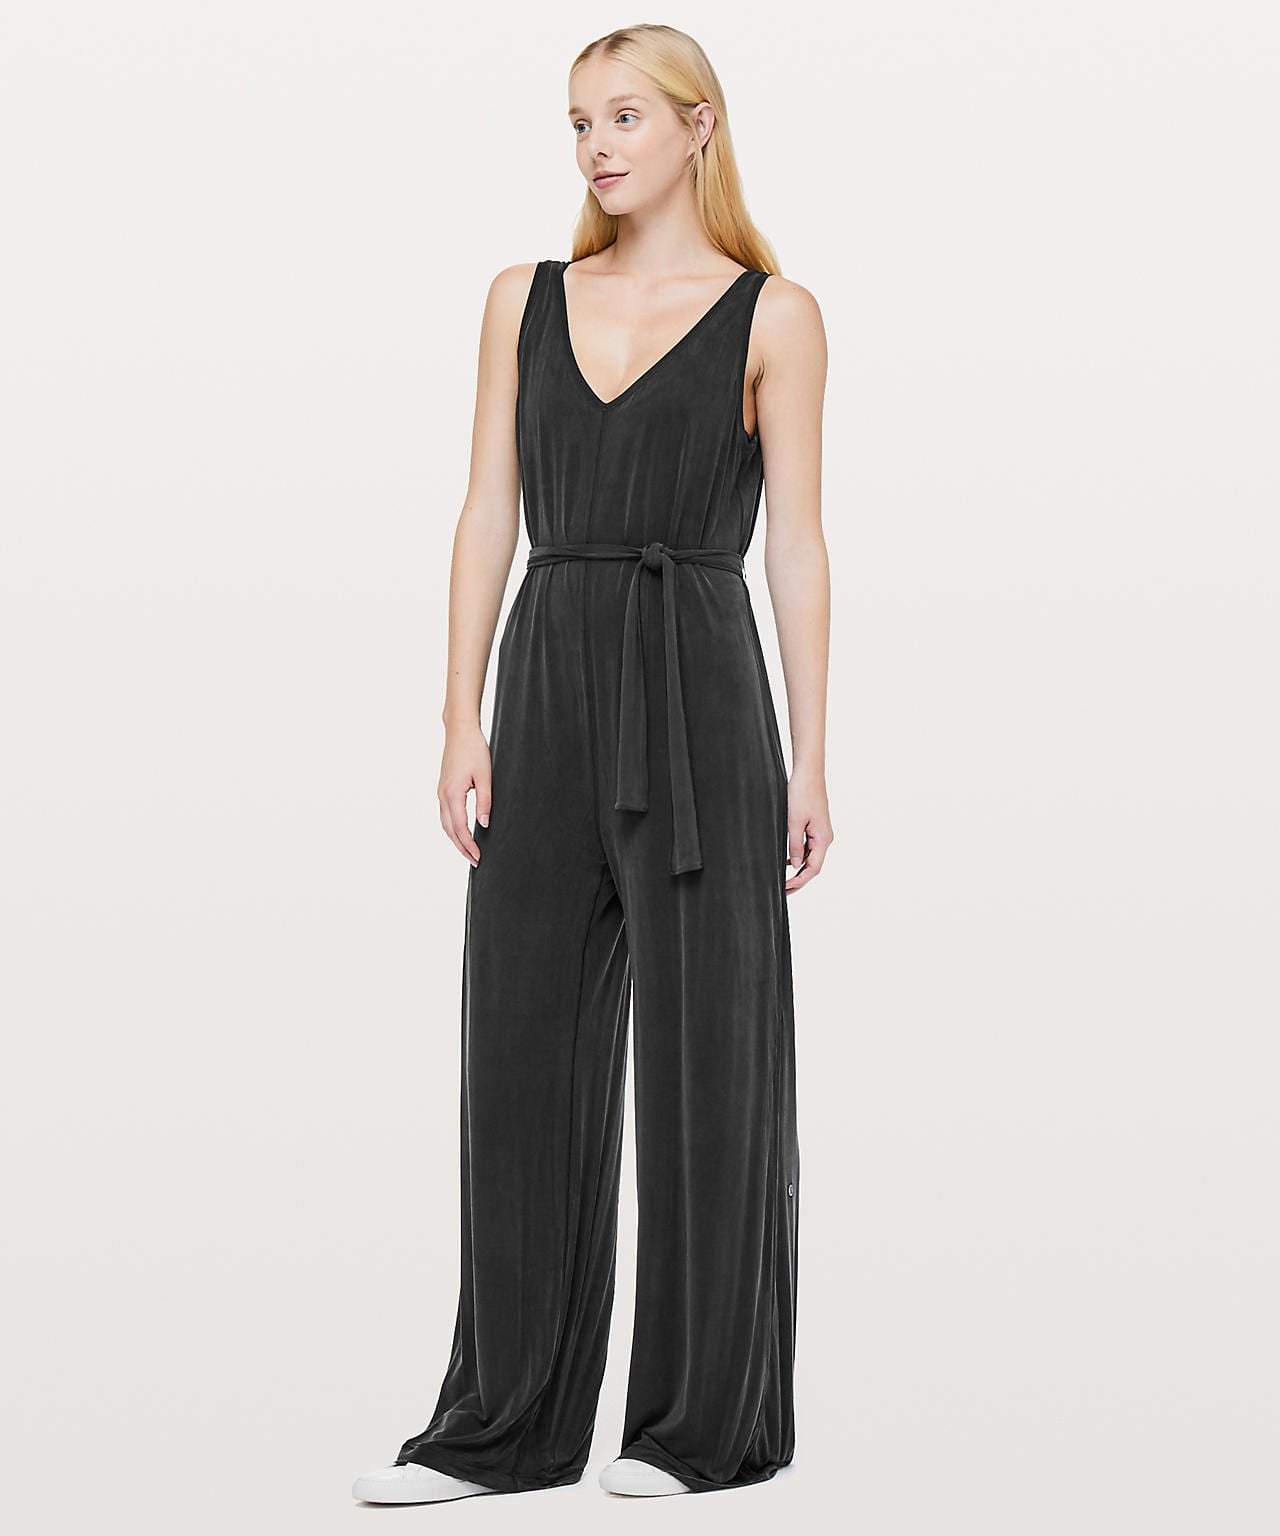 Principal Dancer Jumpsuit